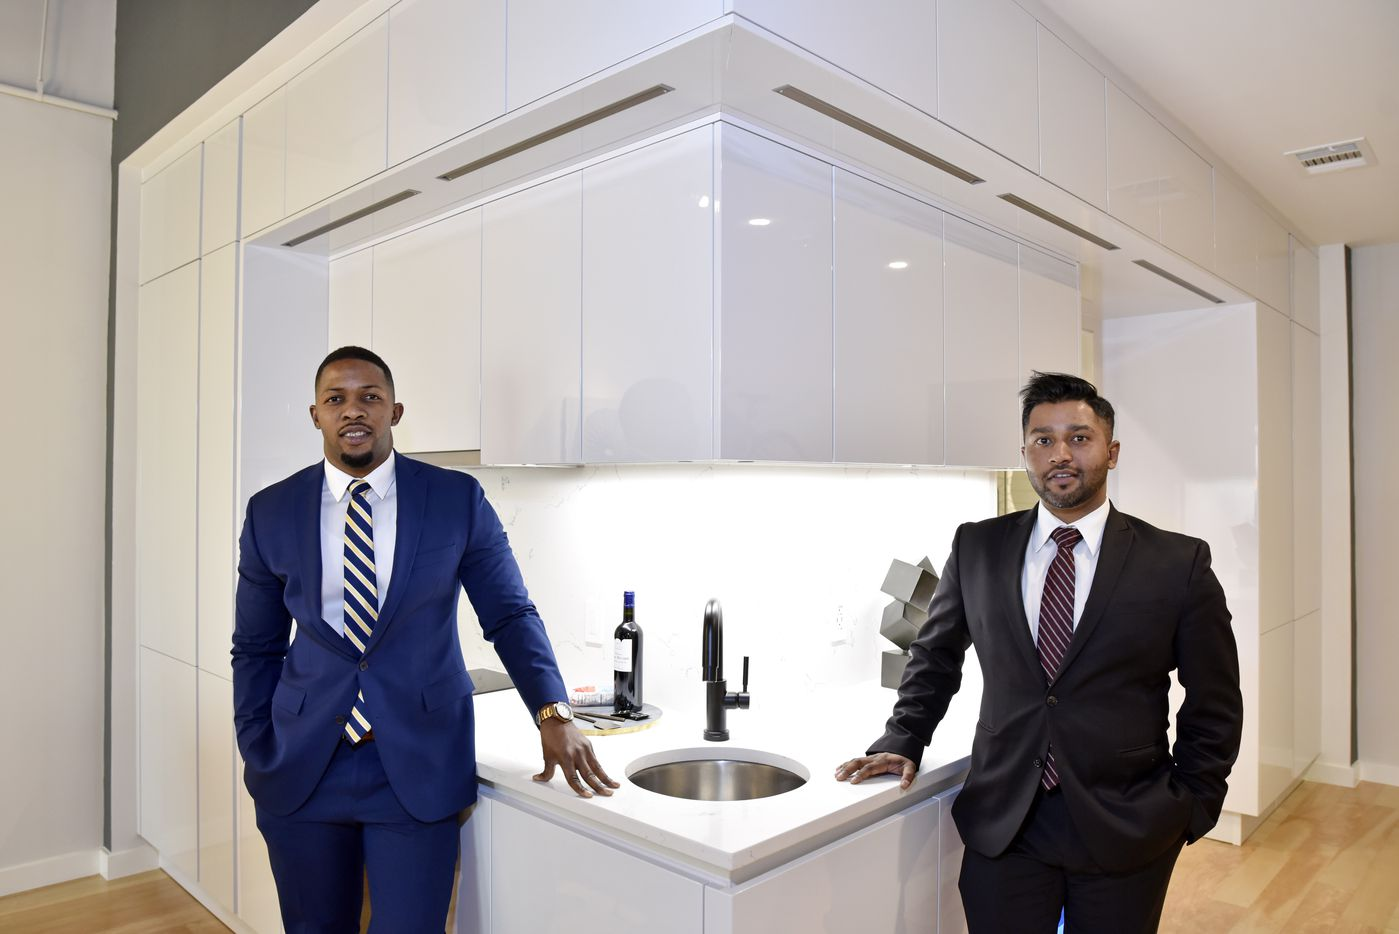 Developers Ike Bams (left) and John Williams of Bluelofts shown with an assembled kitchen area in downtown Dallas.